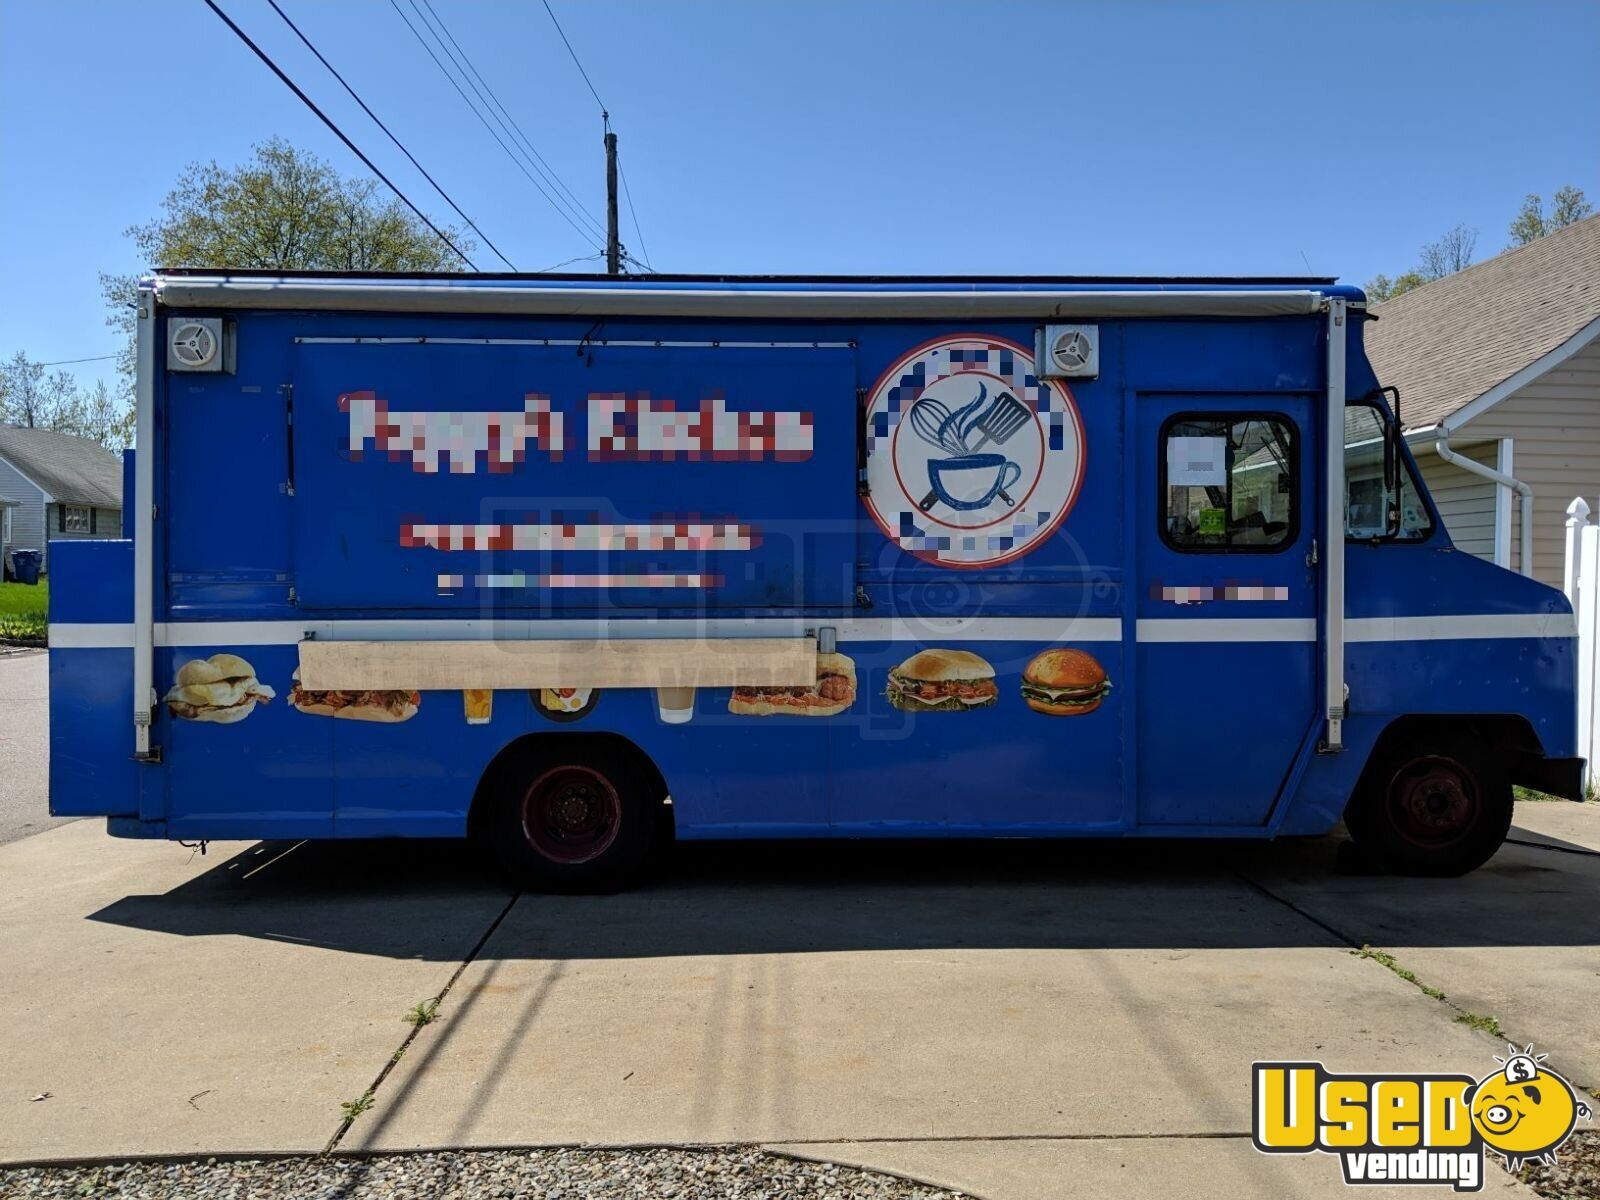 1989 E-350 Kitchen Food Truck All-purpose Food Truck Concession Window New Jersey Gas Engine for Sale - 2